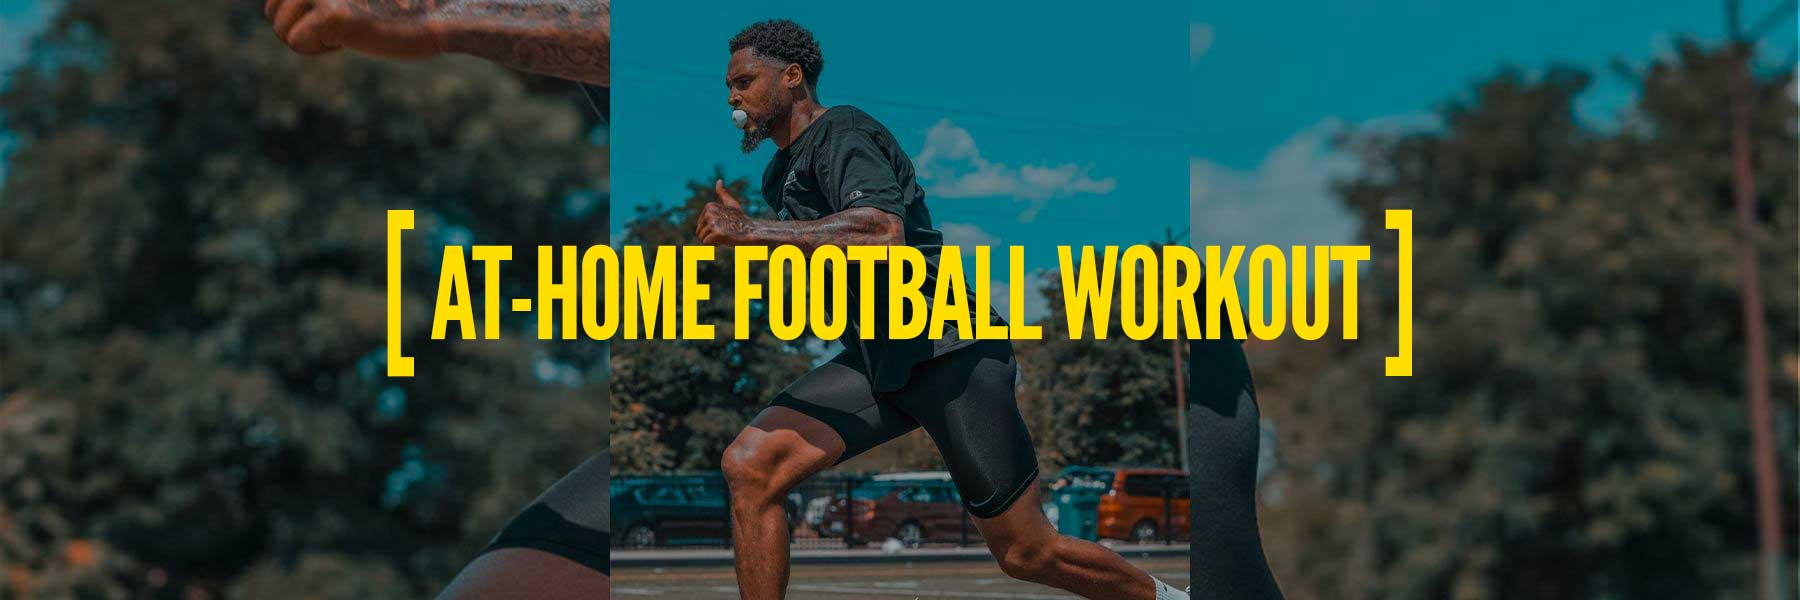 5 Best In-Home Football Workouts